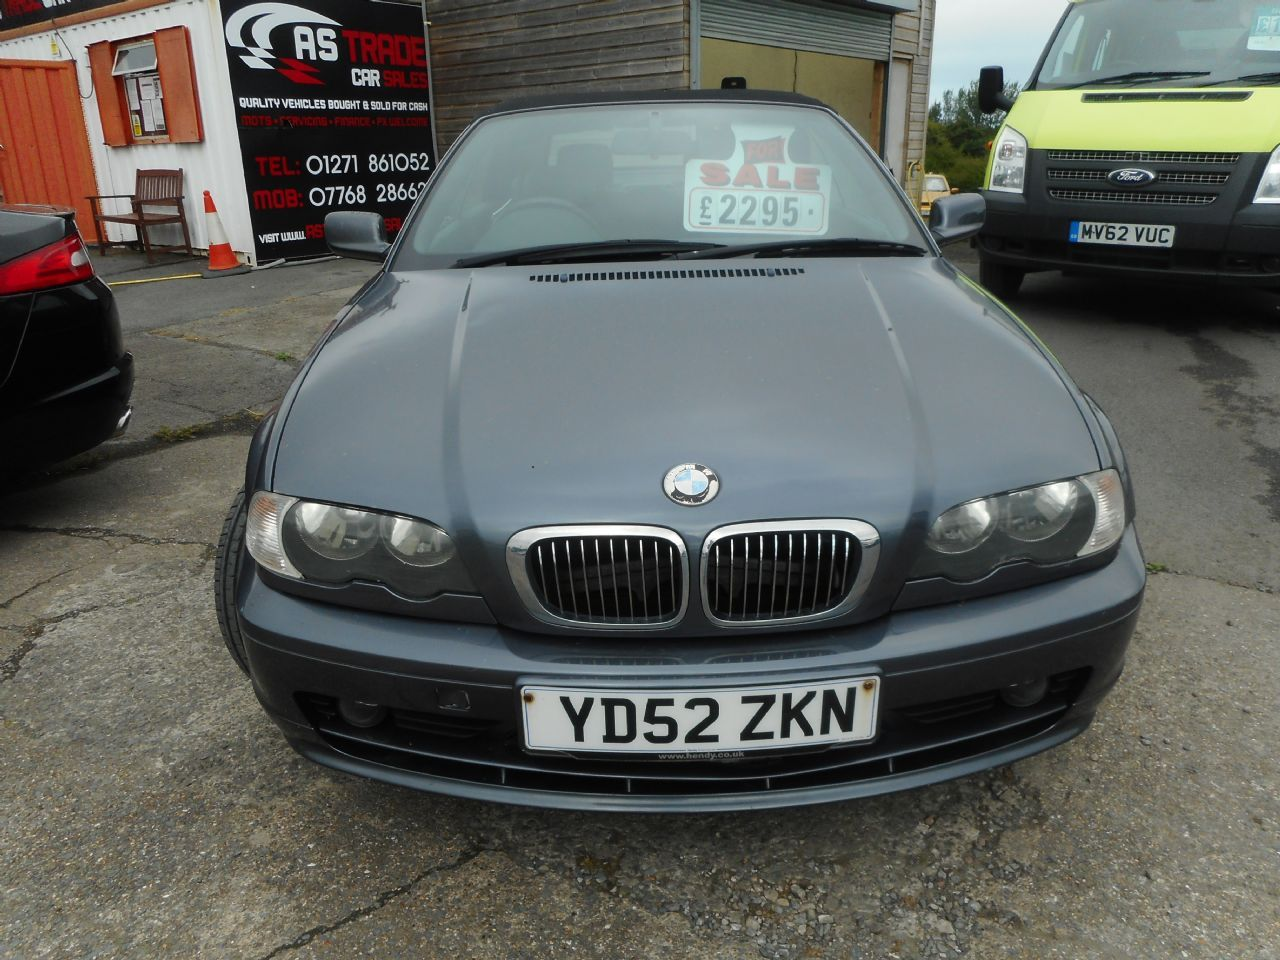 BMW 325CI 2.5i (2002) - Picture 2